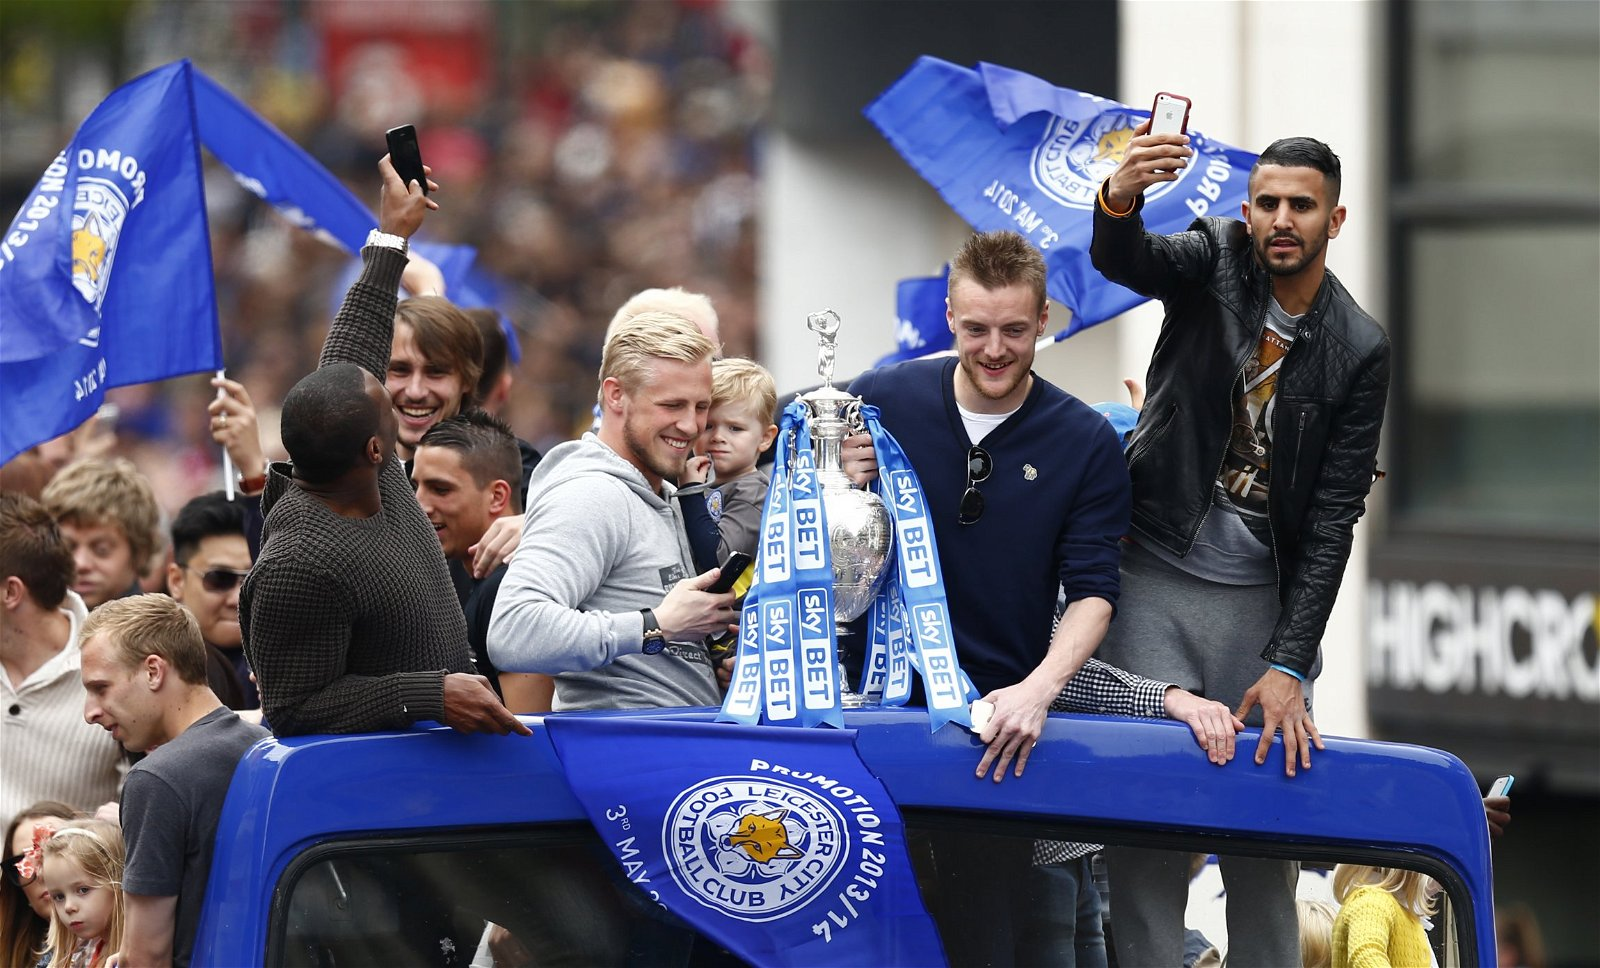 Leicester City Championship winners parade